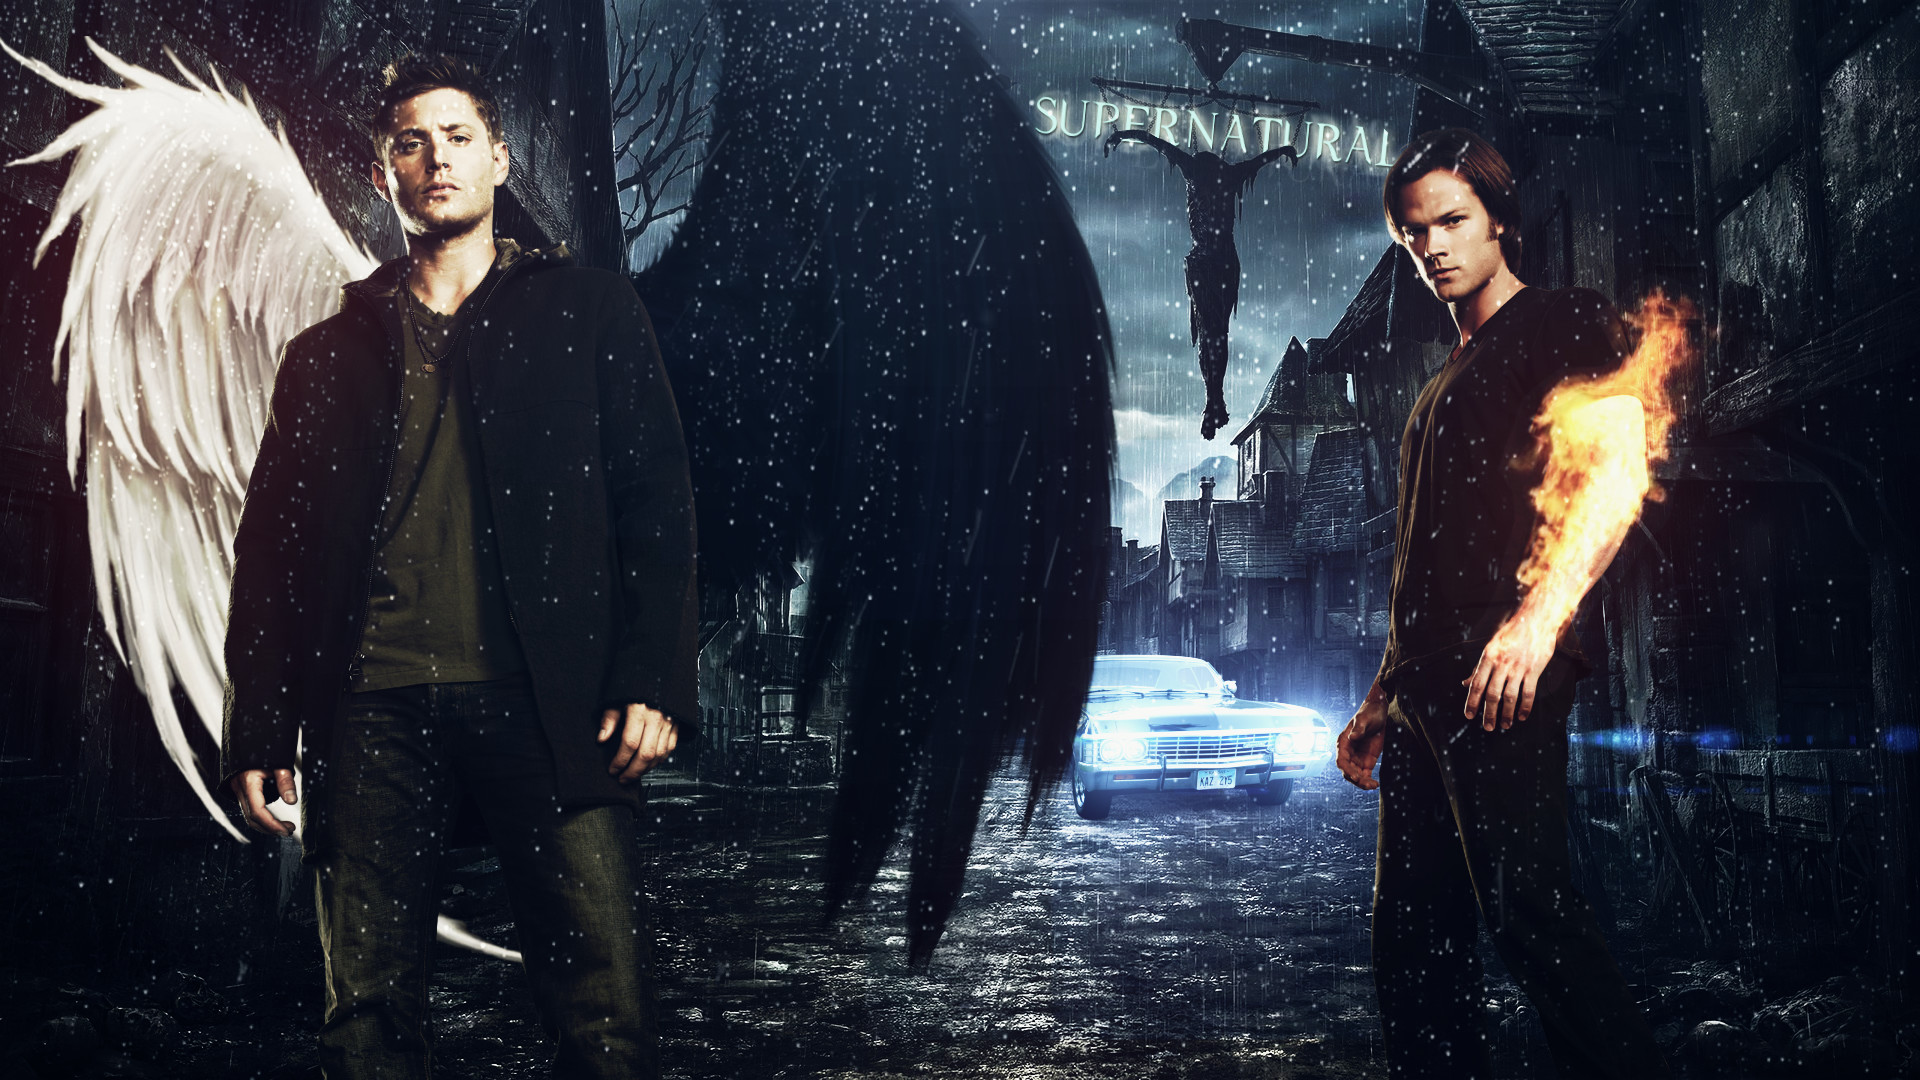 1920x1080 ... 110 Supernatural HD Wallpapers | Backgrounds - Wallpaper Abyss ...